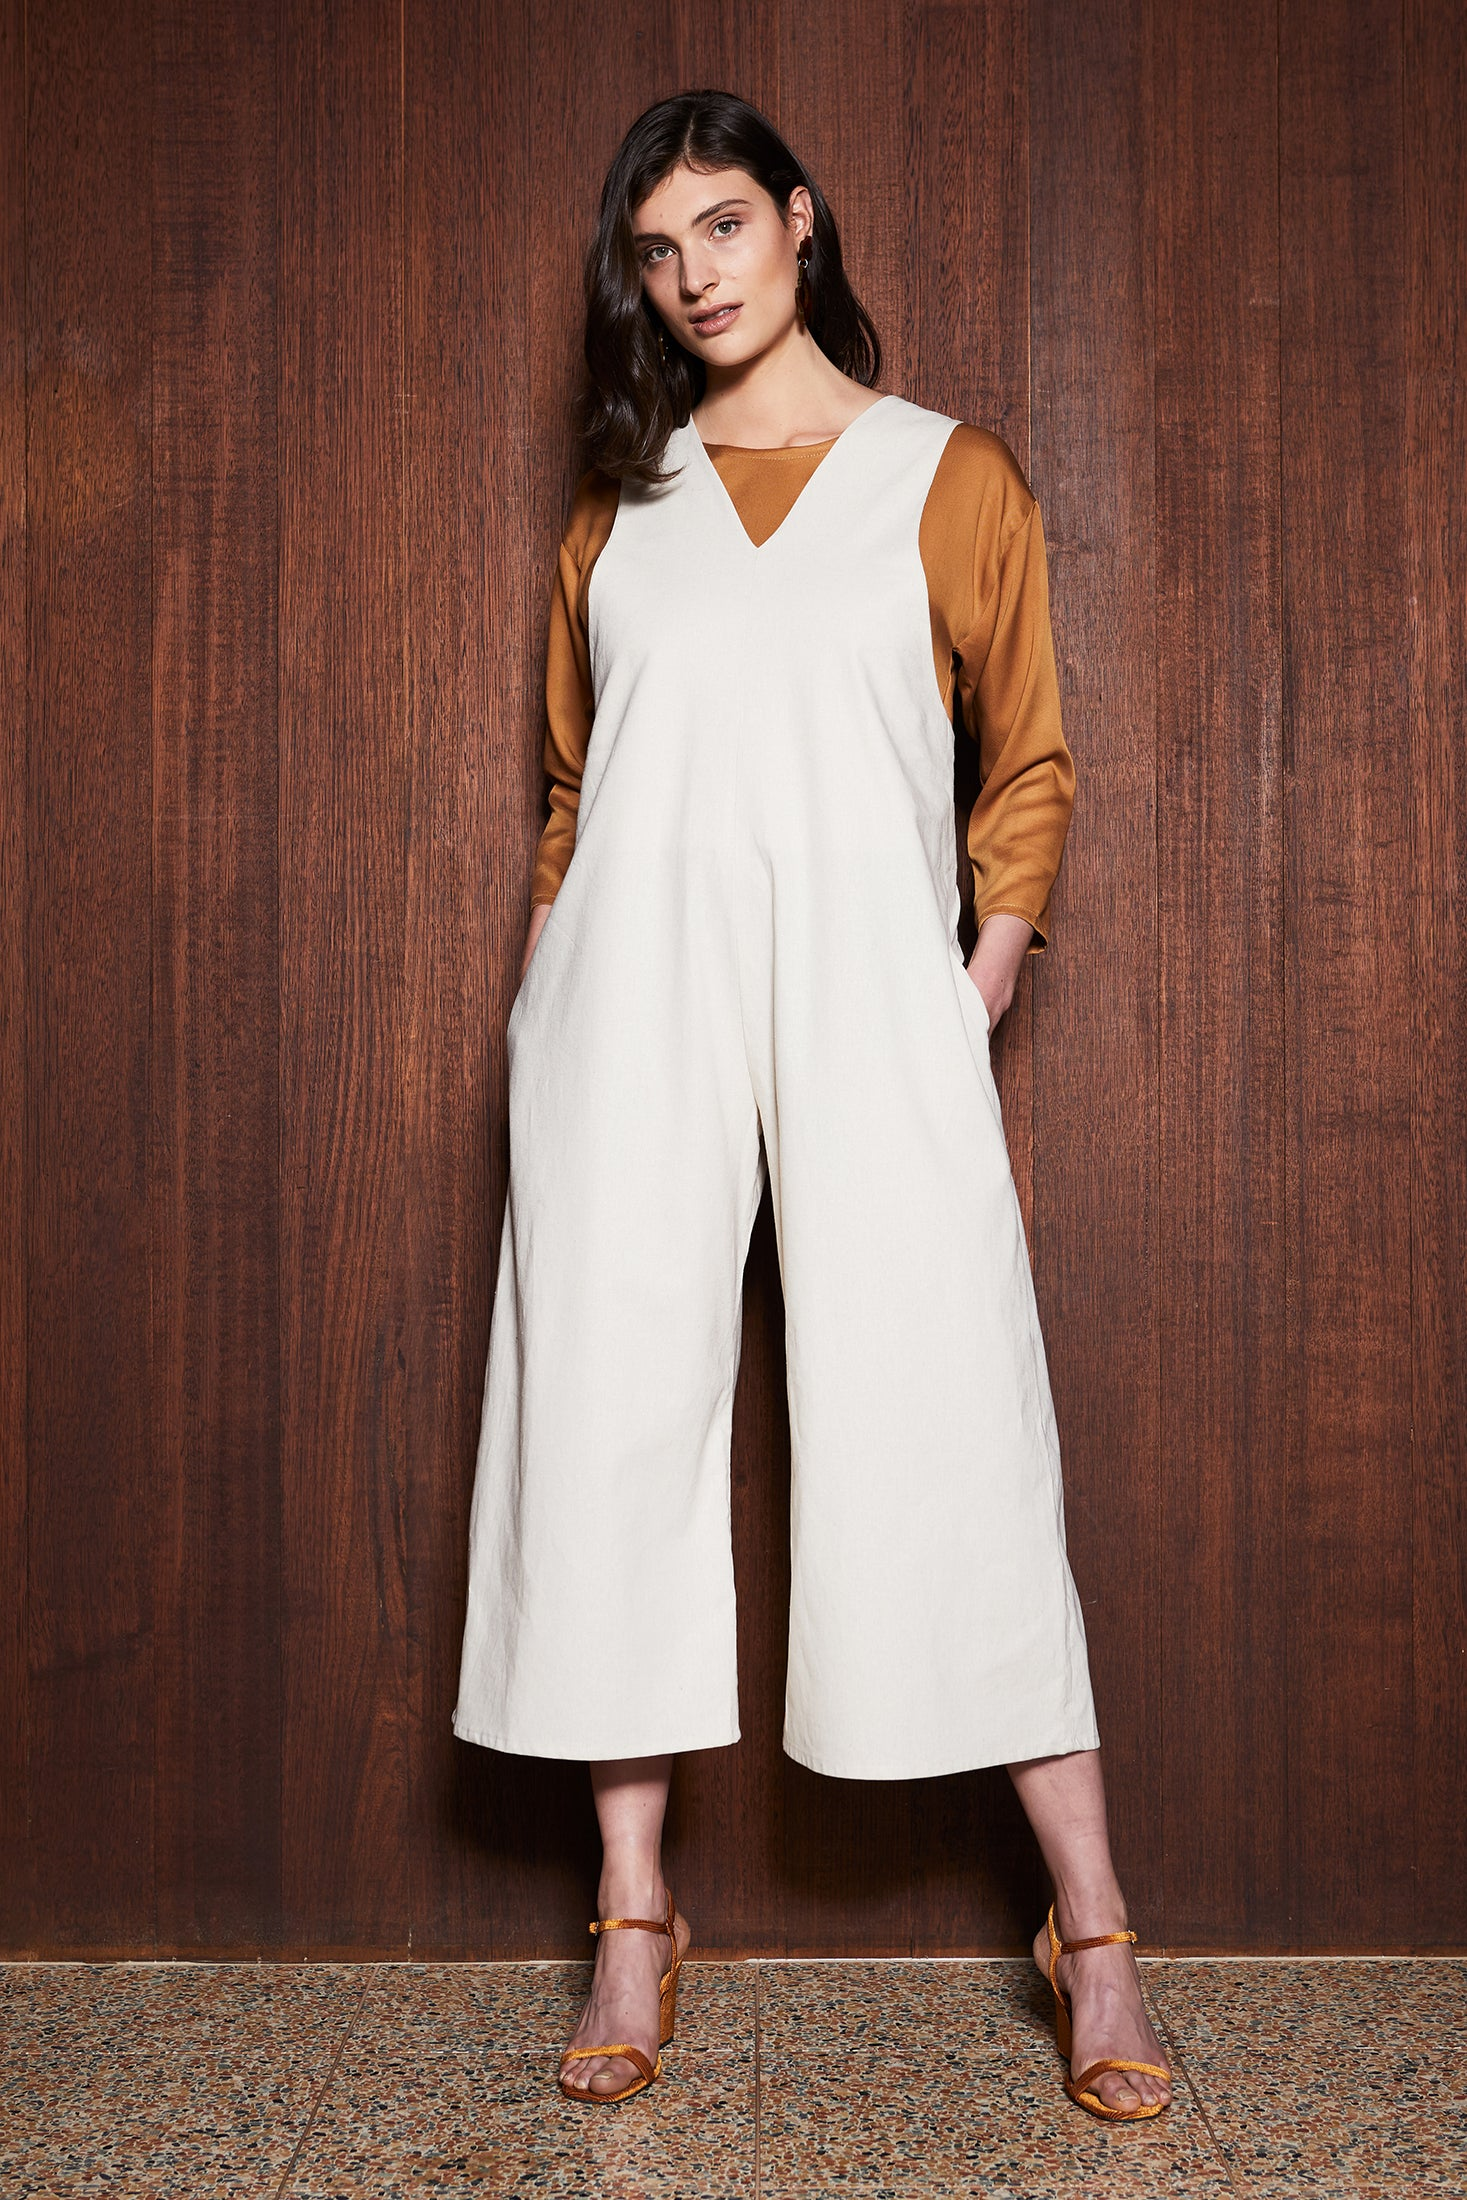 Women's Clothing in Melbourne Australia Truffle Jumpsuit Cream Natural Linen Tortoiseshell